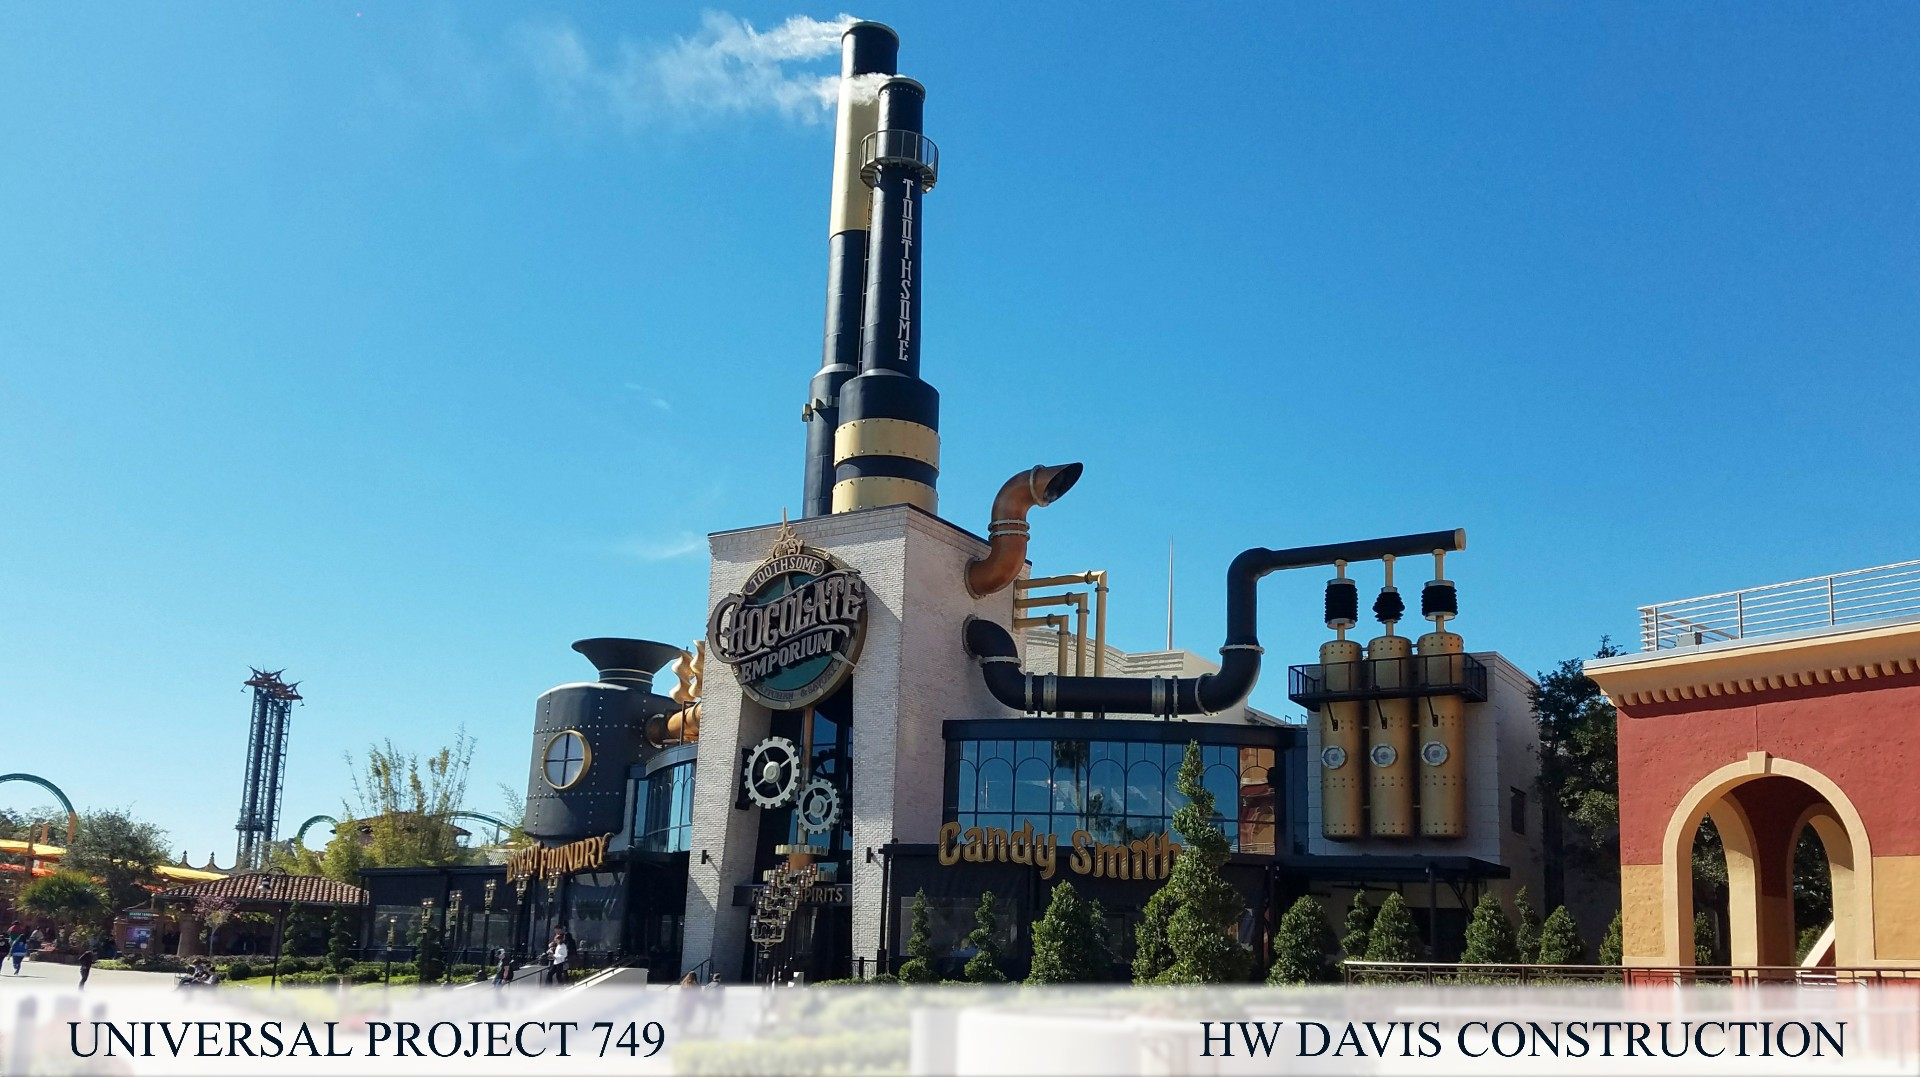 Universal Project 749